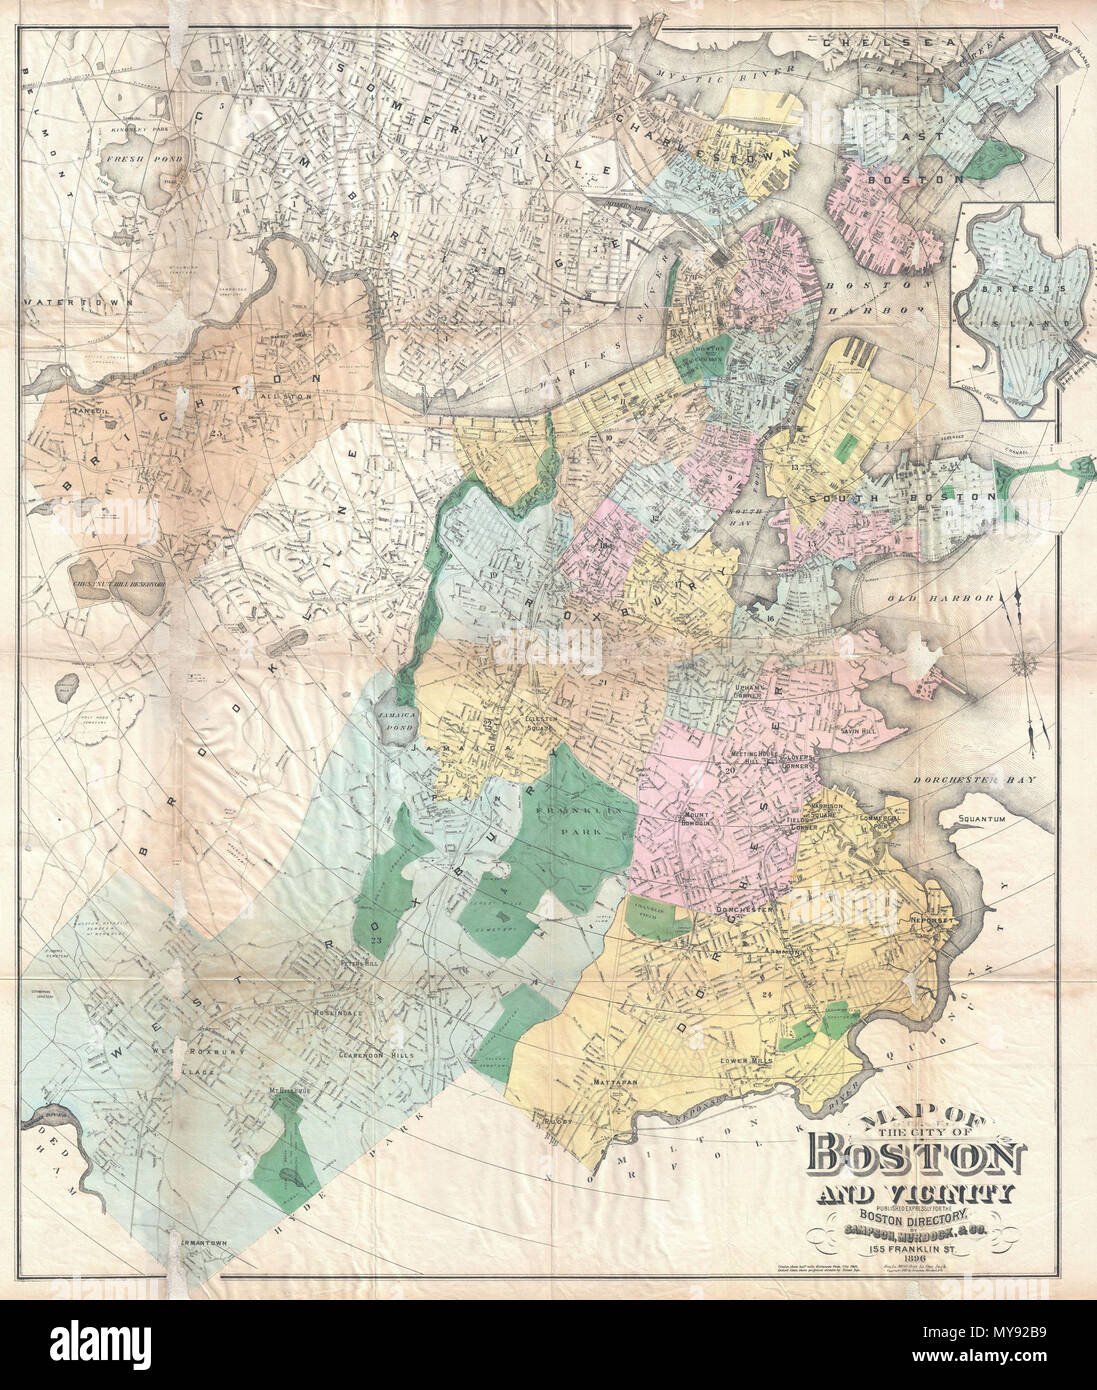 Map of The City of Boston and Vicinity. English: An ...